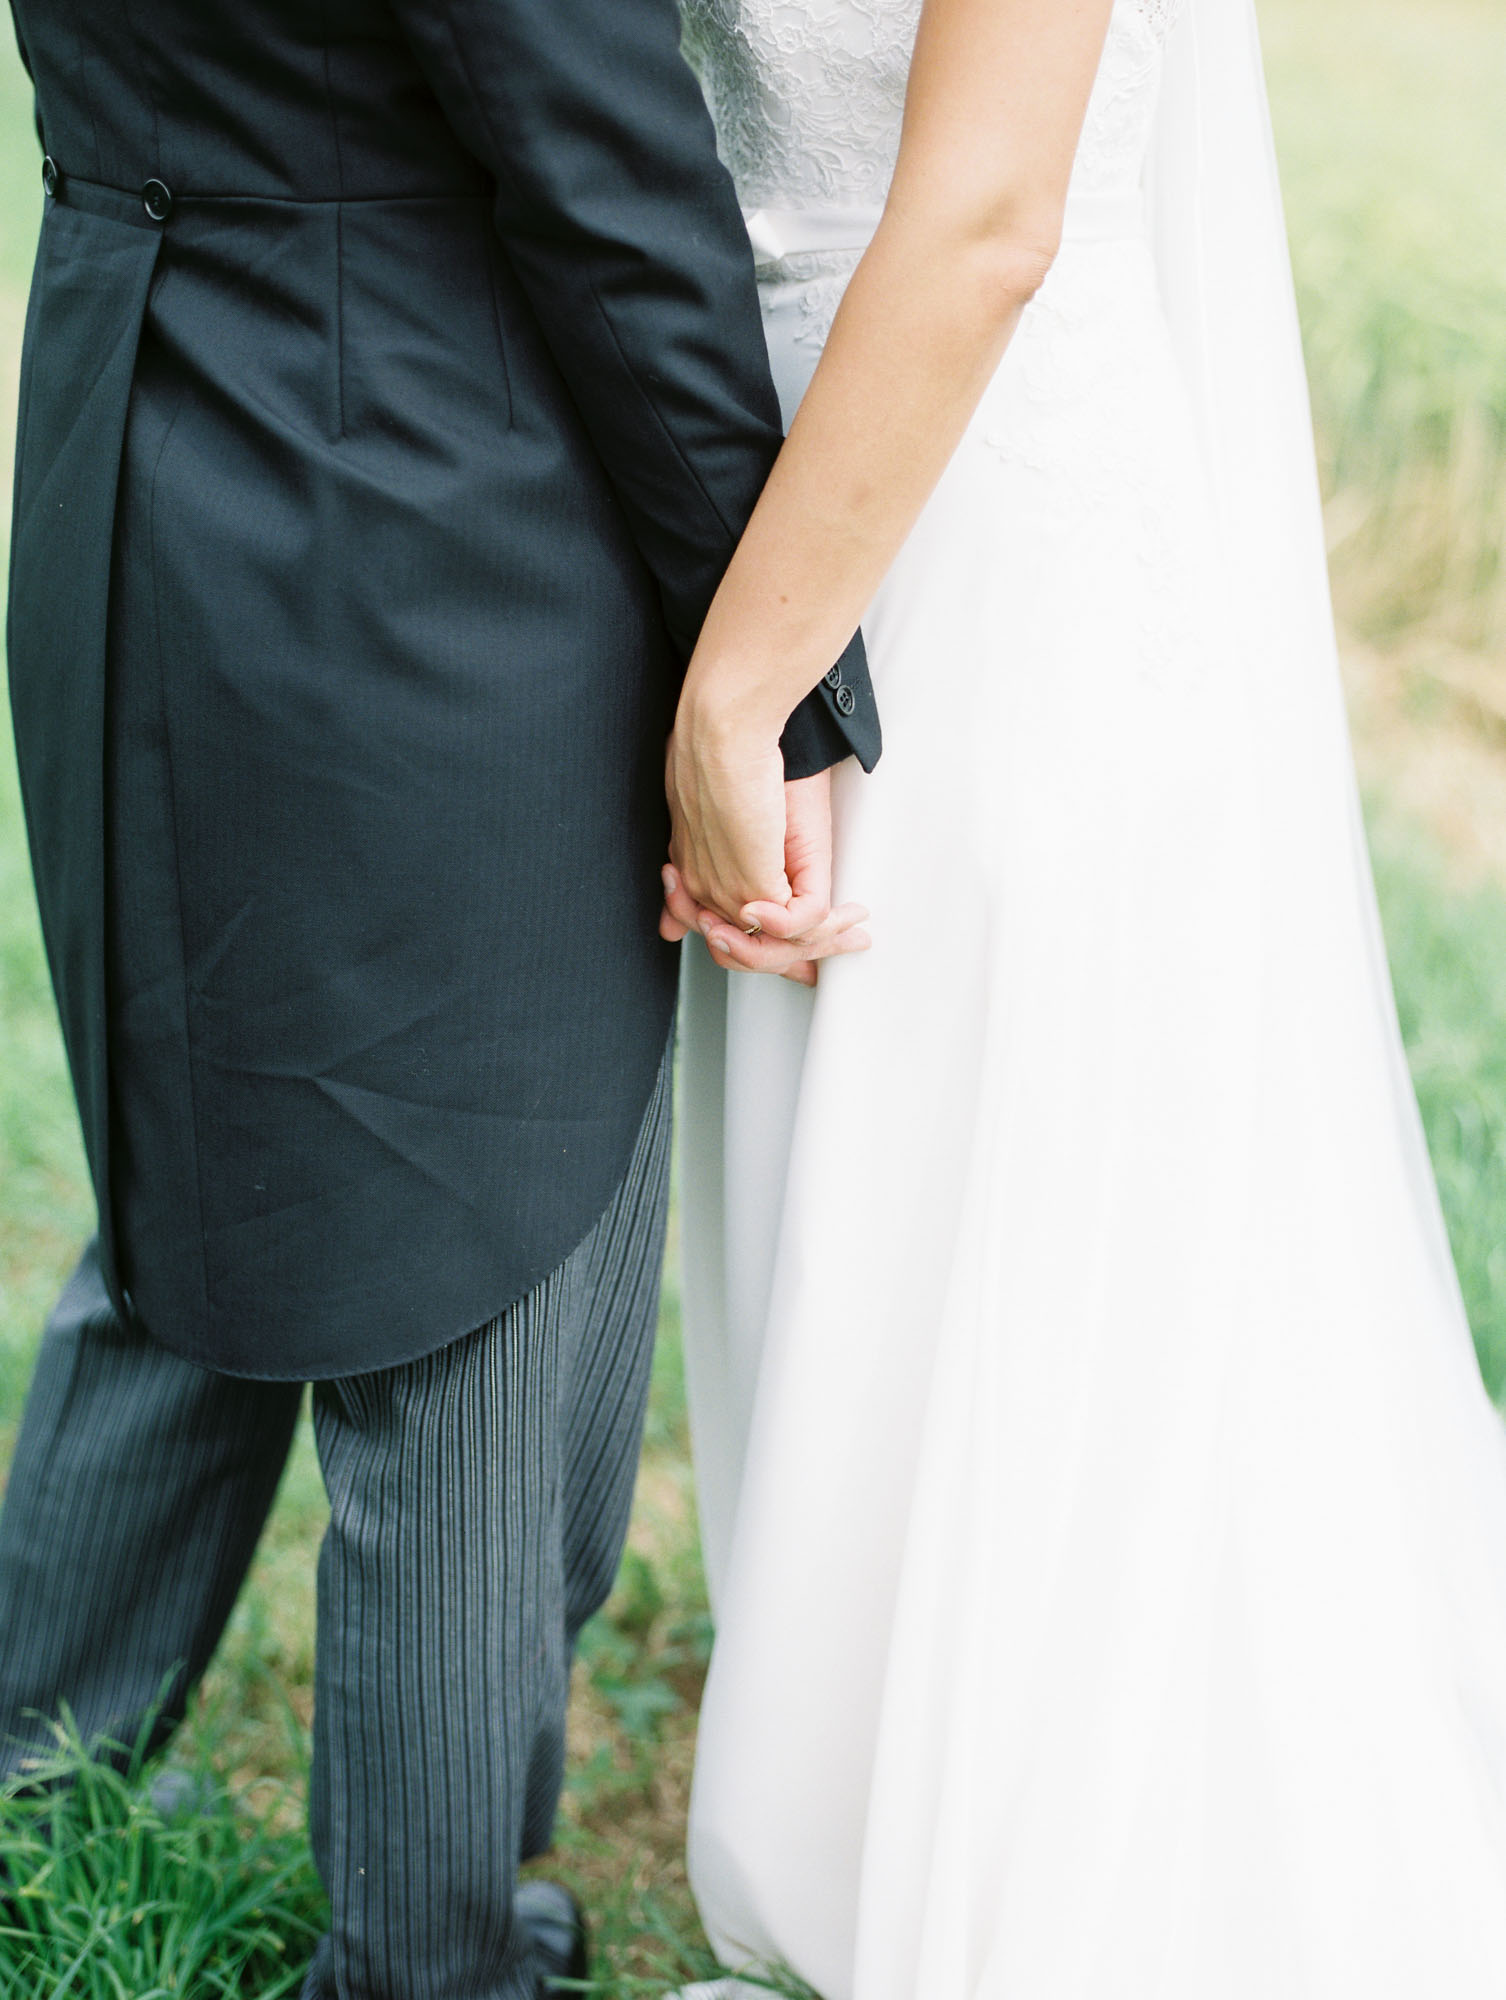 Close up photograph of bride and groom holding hands